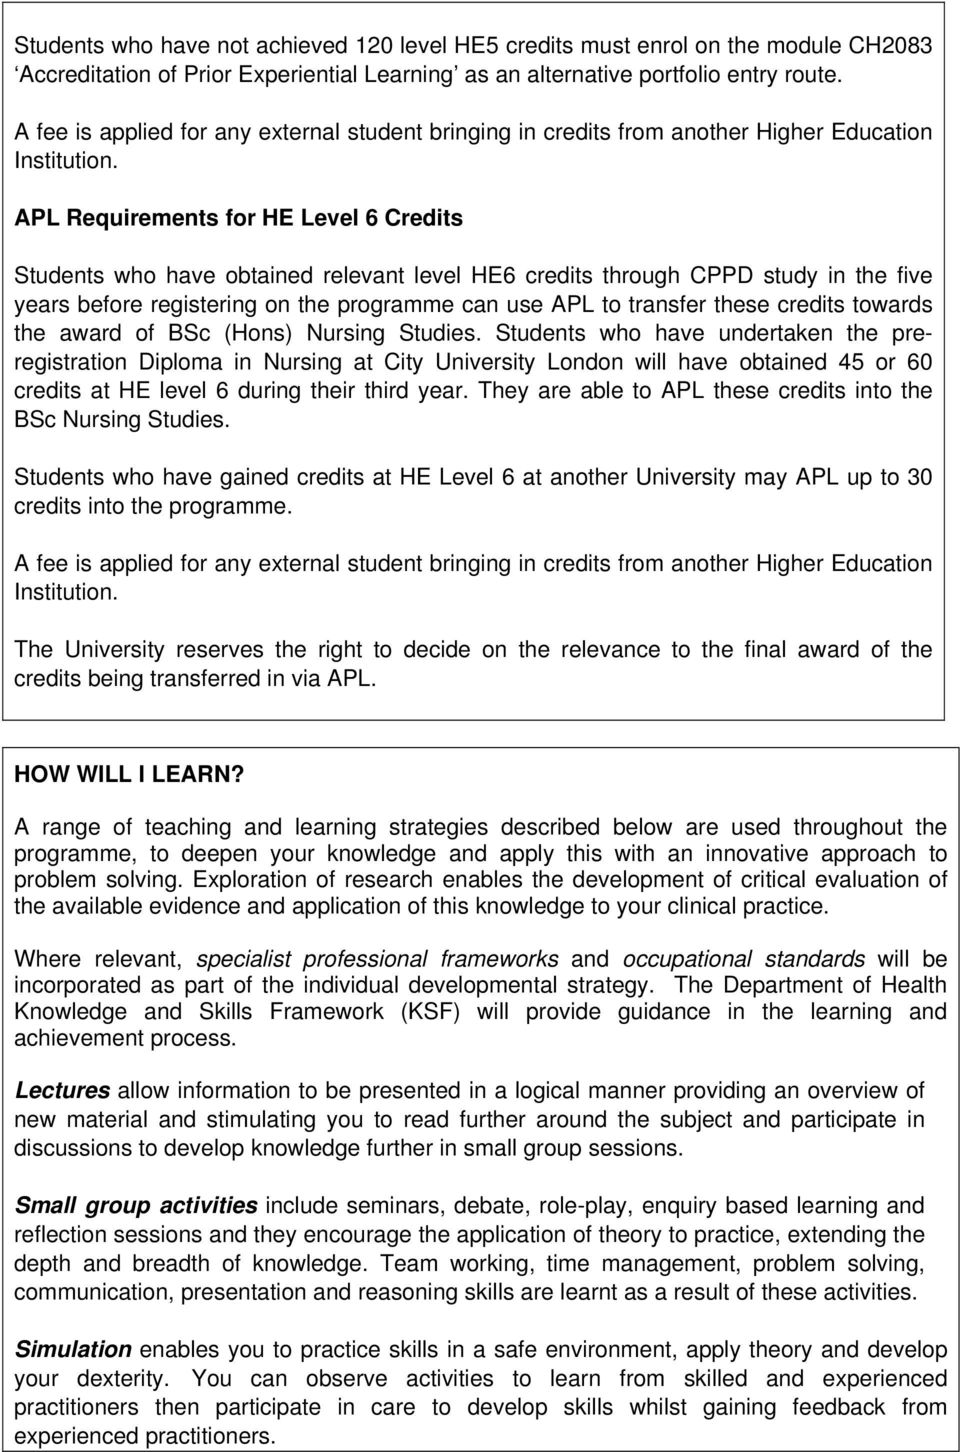 APL Requirements for HE 6 Credits Students who have obtained relevant level HE6 credits through CPPD study in the five years before registering on the programme can use APL to transfer these credits